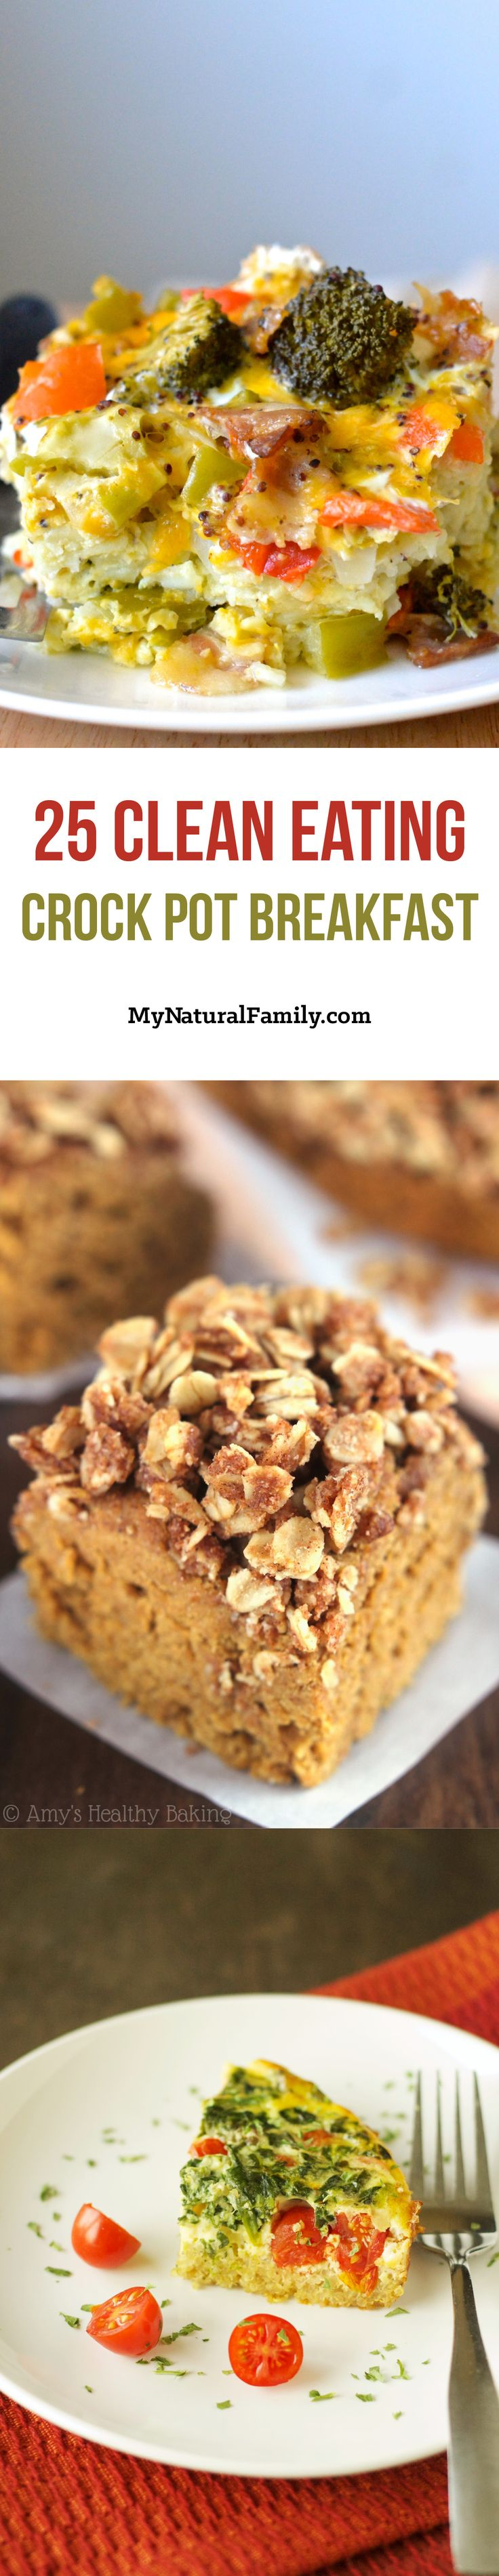 25 Easy Clean Eating Crock Pot Breakfast Recipes - Wake Up to A Delicious Meal!